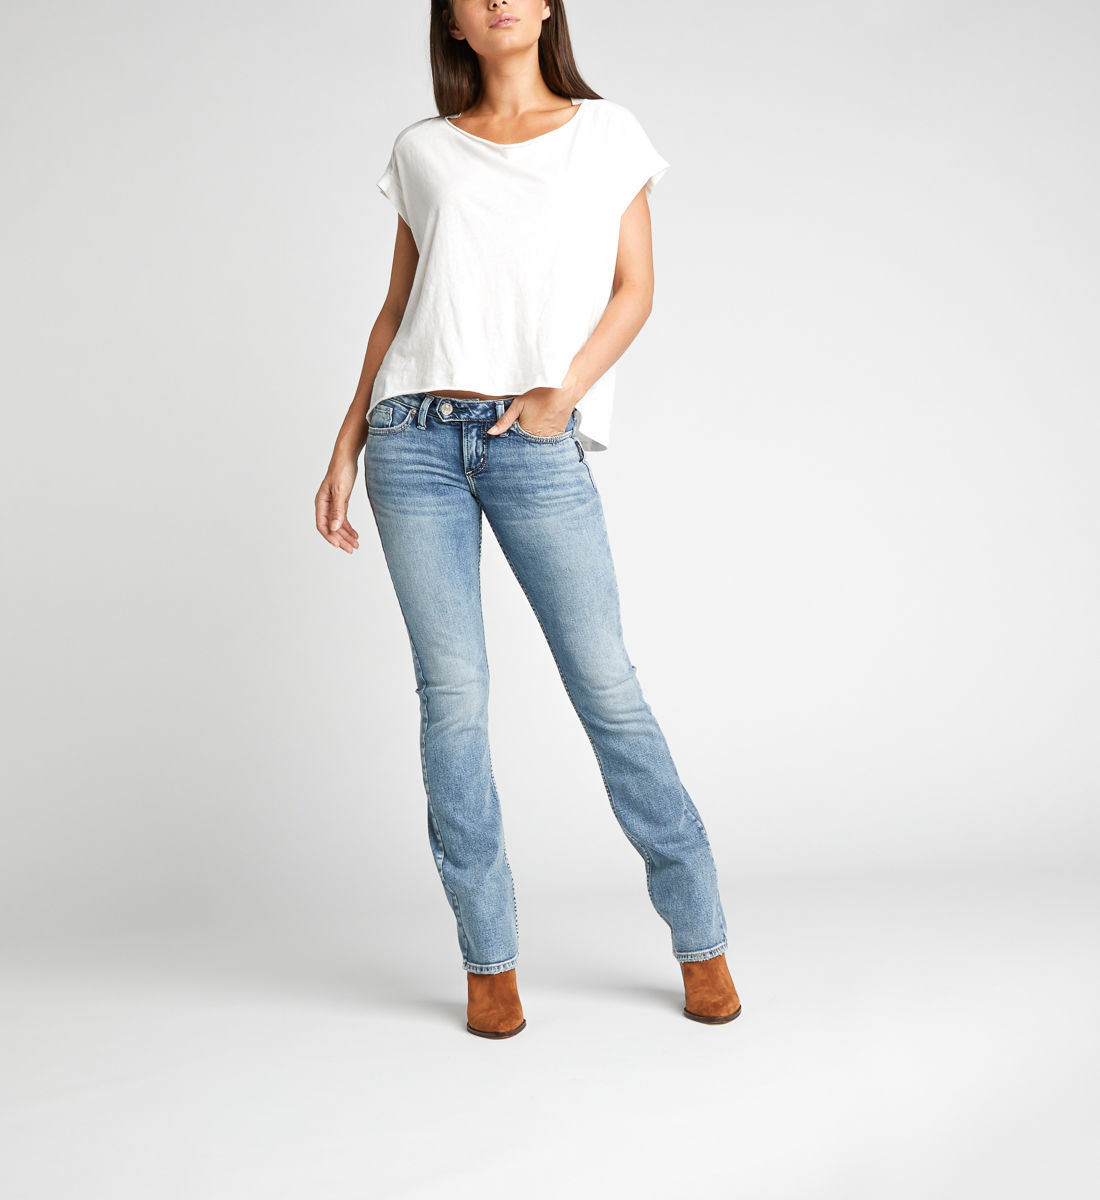 Womens Designer Clothing & Apparel | Silver Jeans